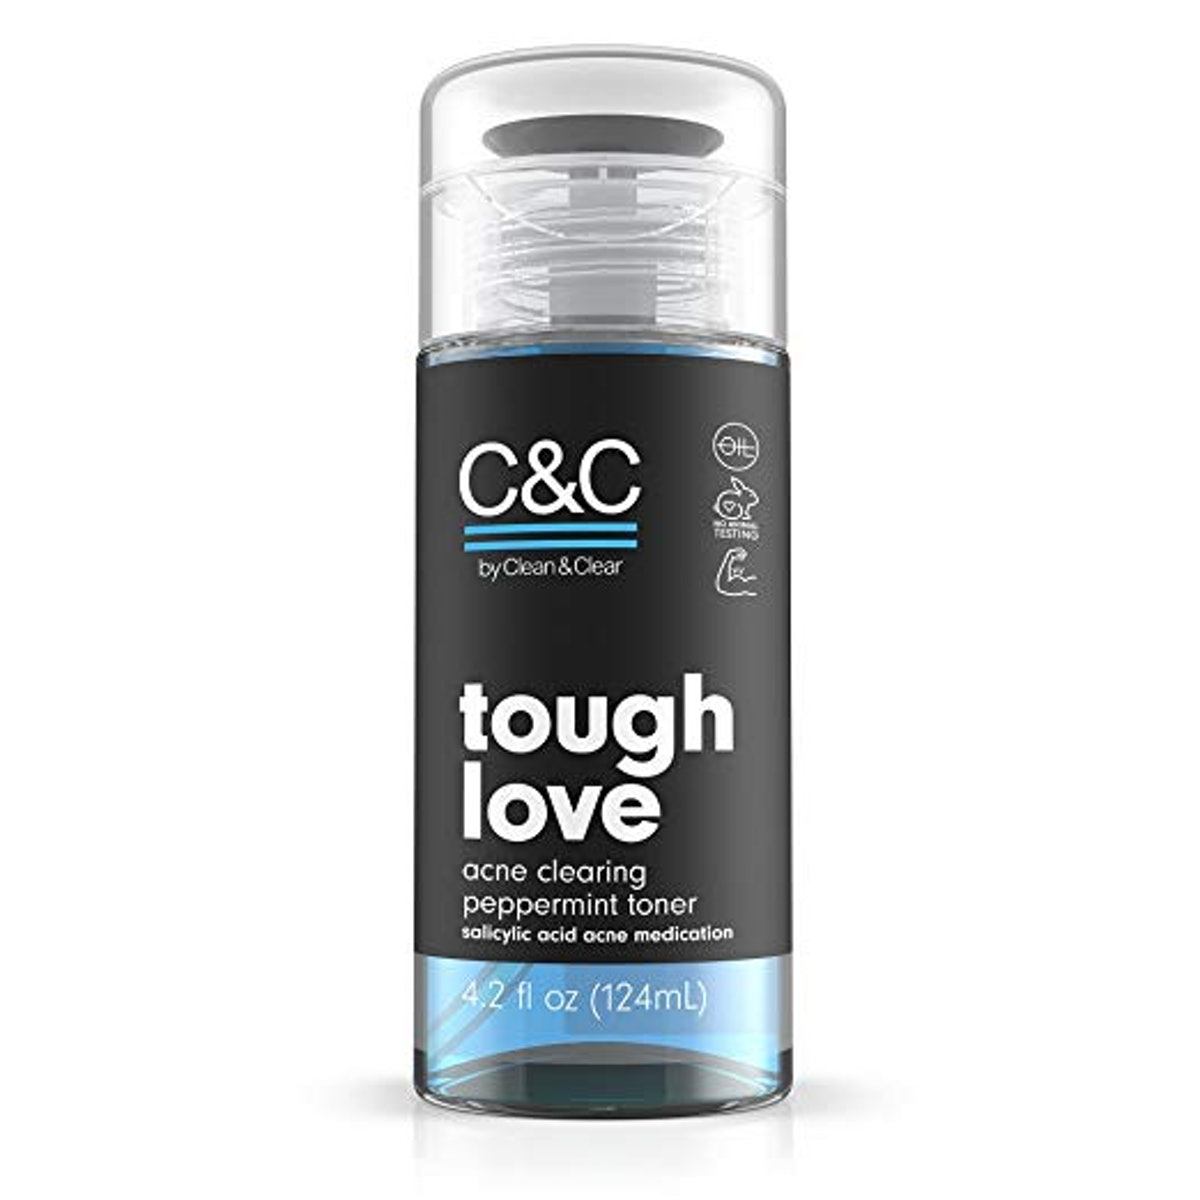 Tough Love Acne Clearing Peppermint Toner